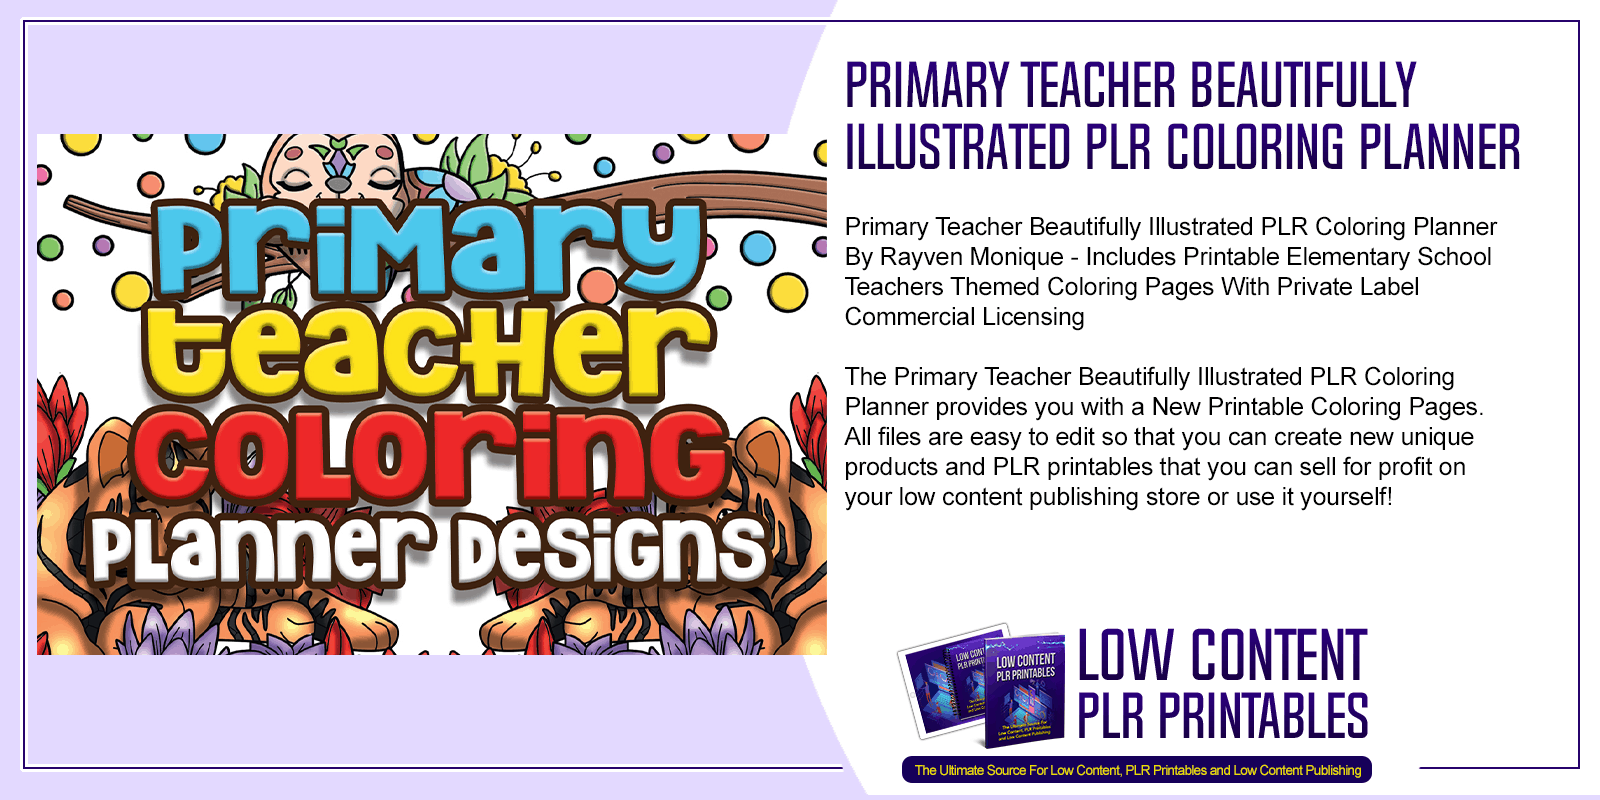 Primary Teacher Beautifully Illustrated PLR Coloring Planner